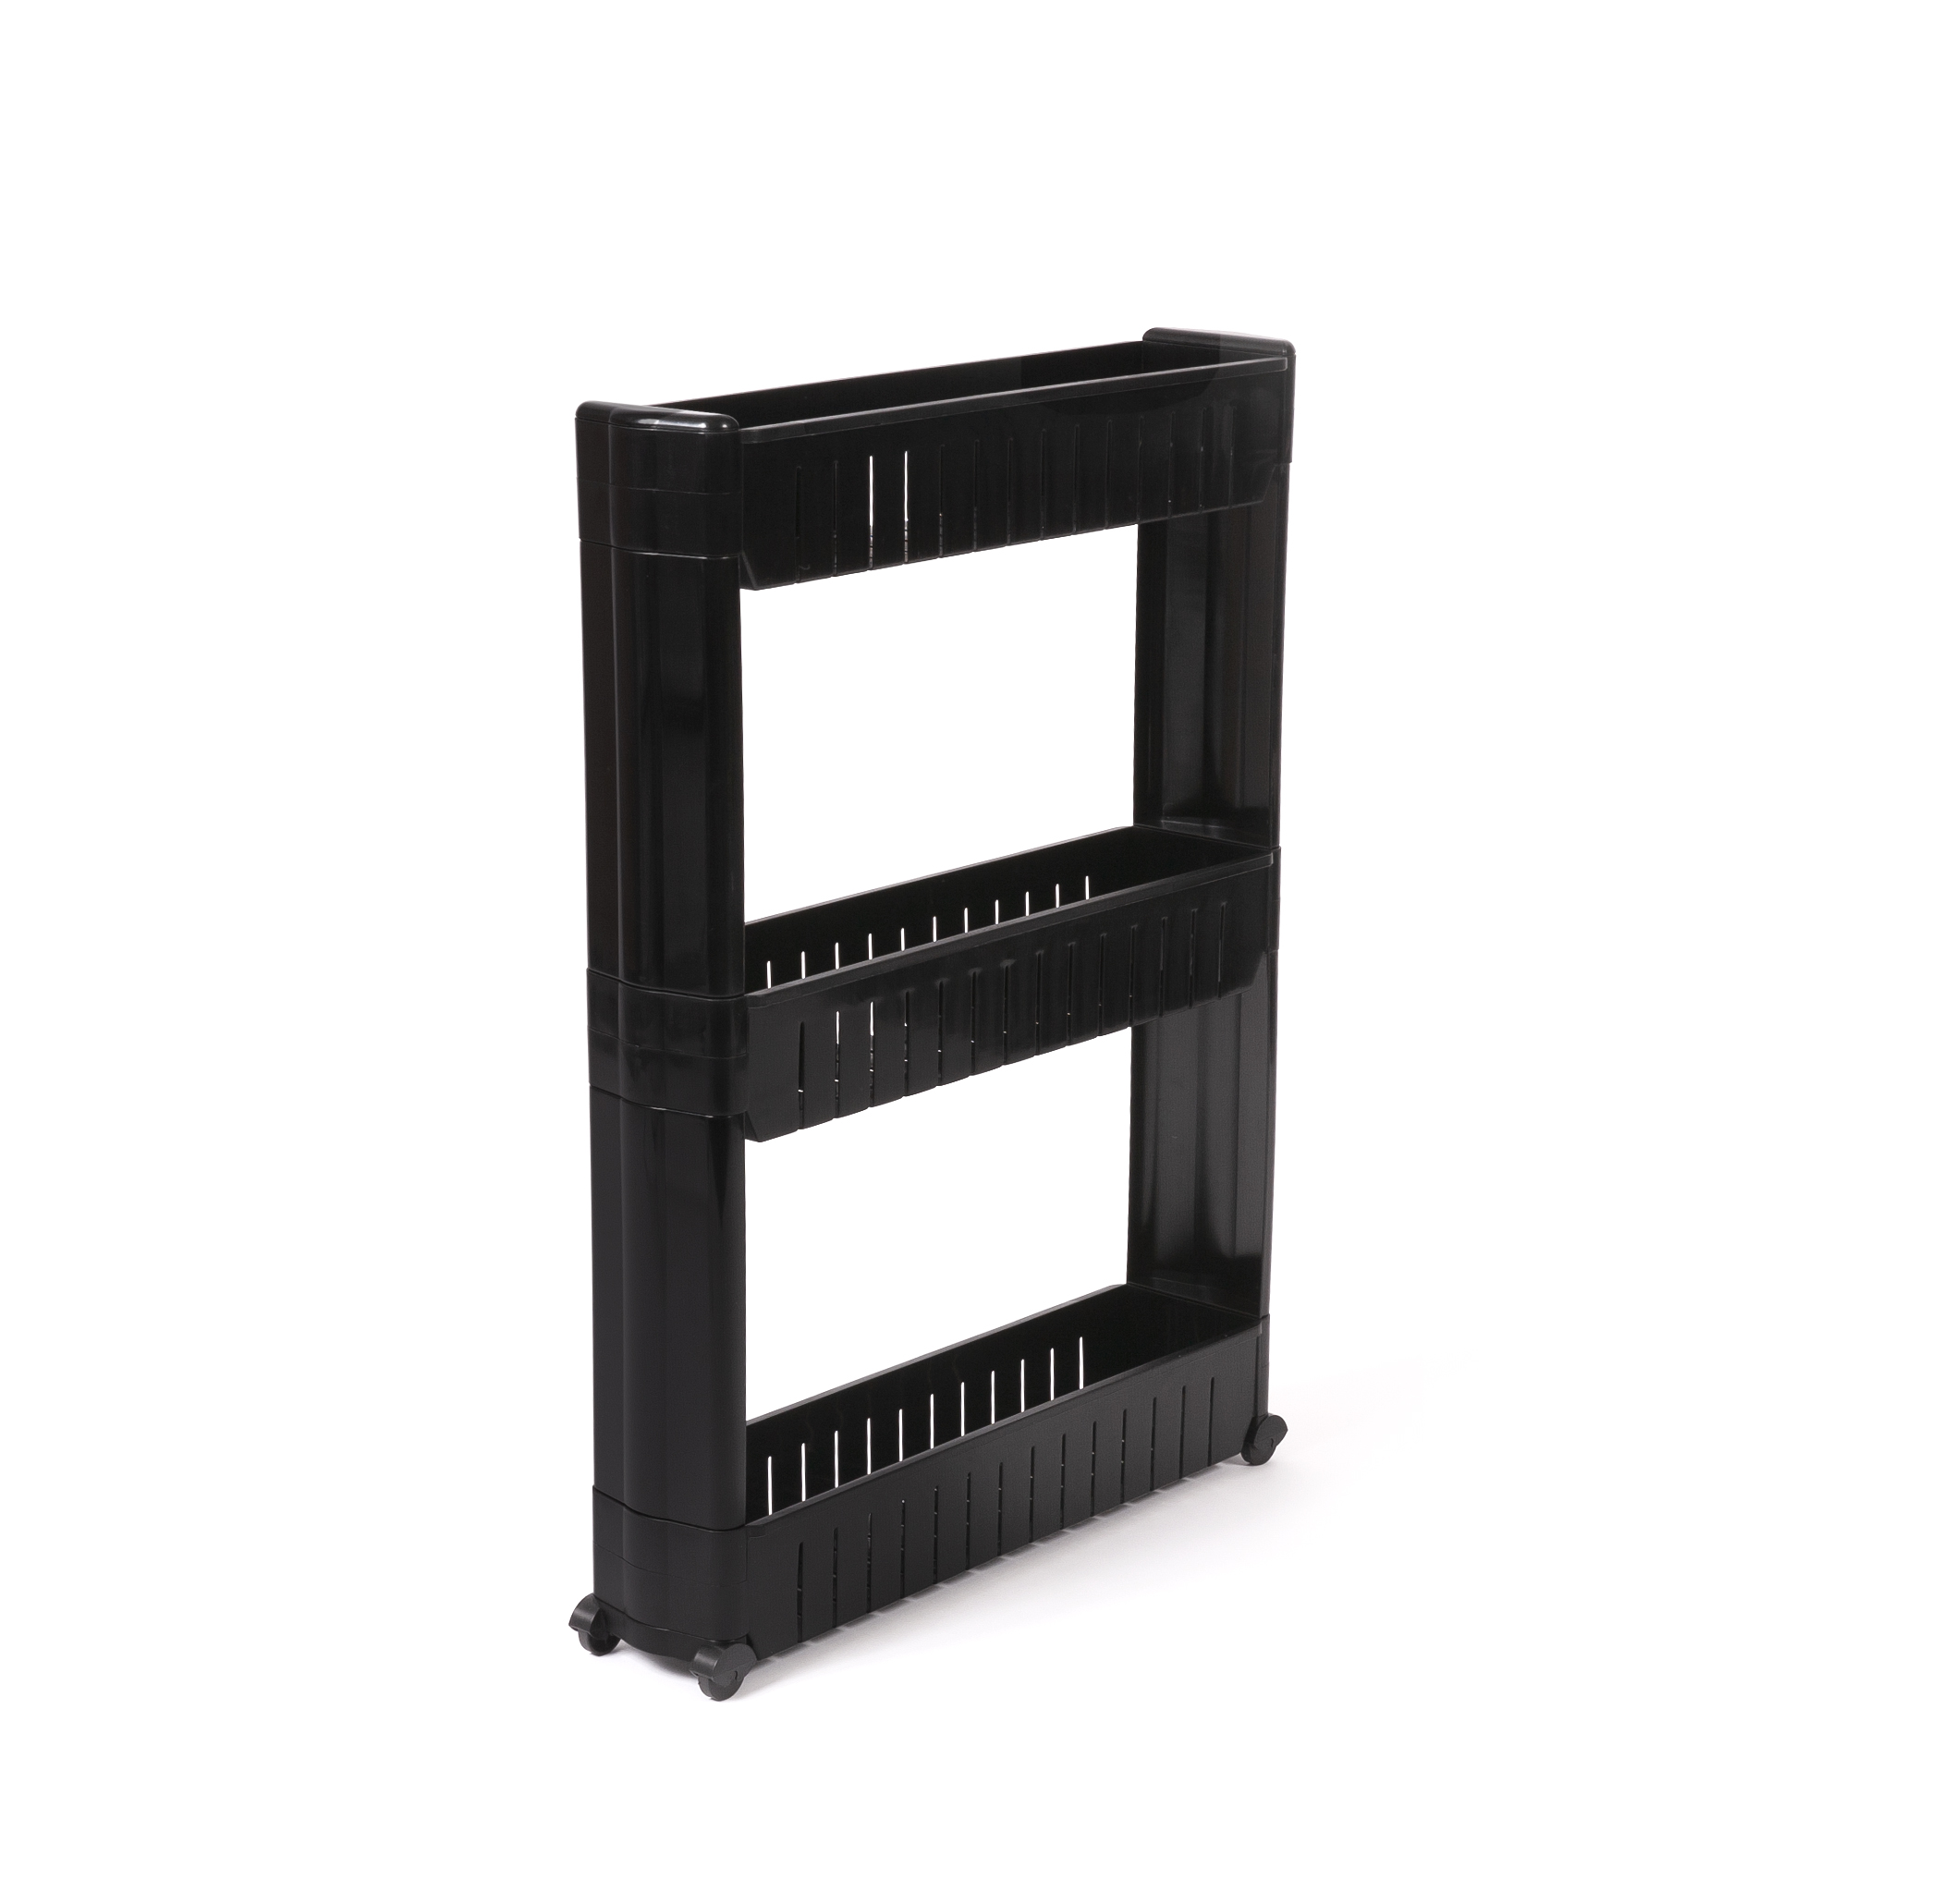 IDEAWORKS ZB6032BLK 3 TIER SLIDE OUT STORAGE TOWER FOR